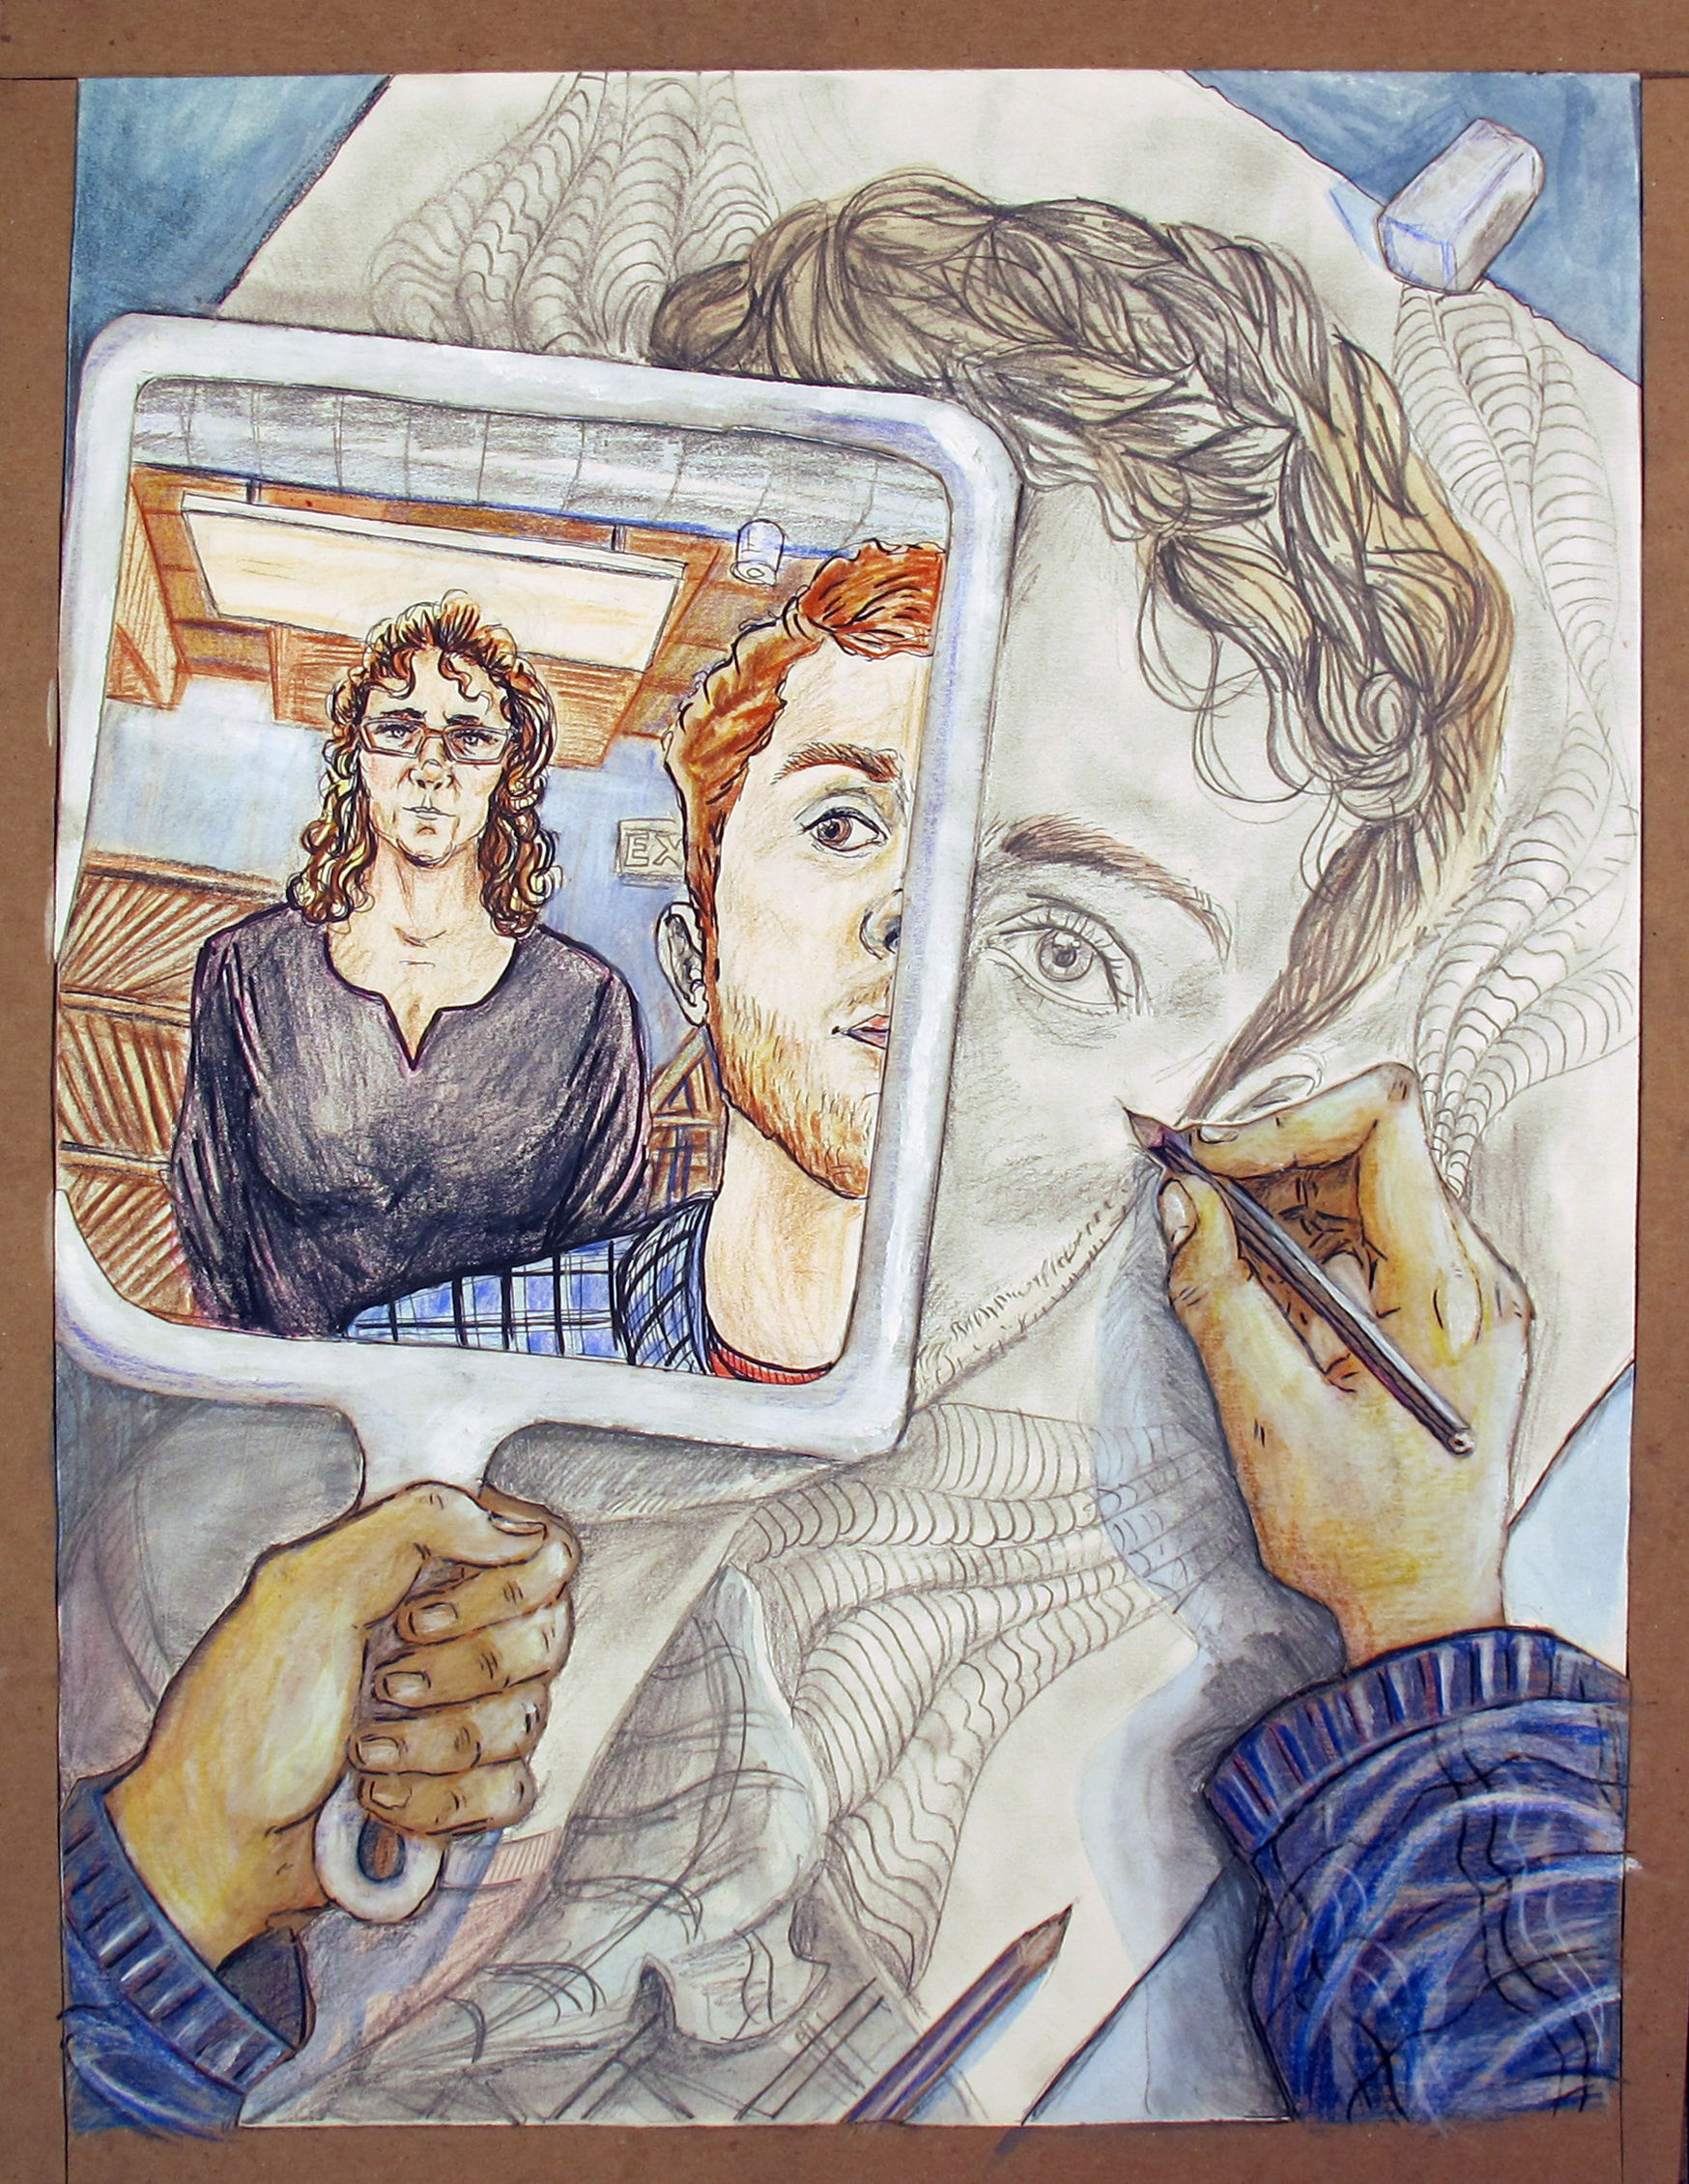 Zack Martin, Self Portrait with Terri in the mirror